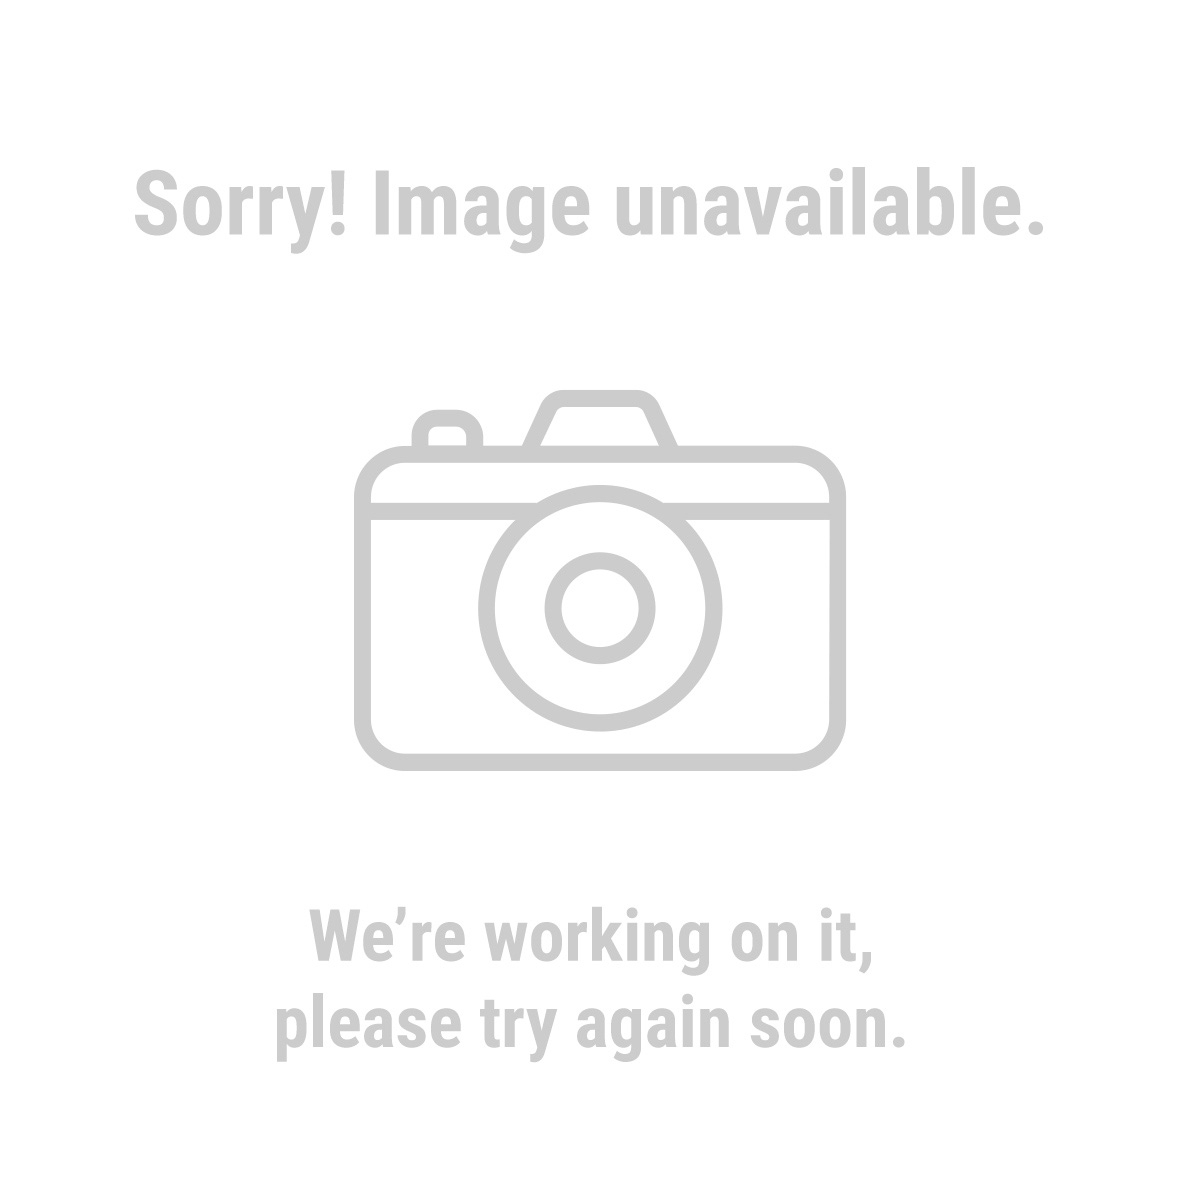 Harbor Freight Pocket Hole Jig Coupon